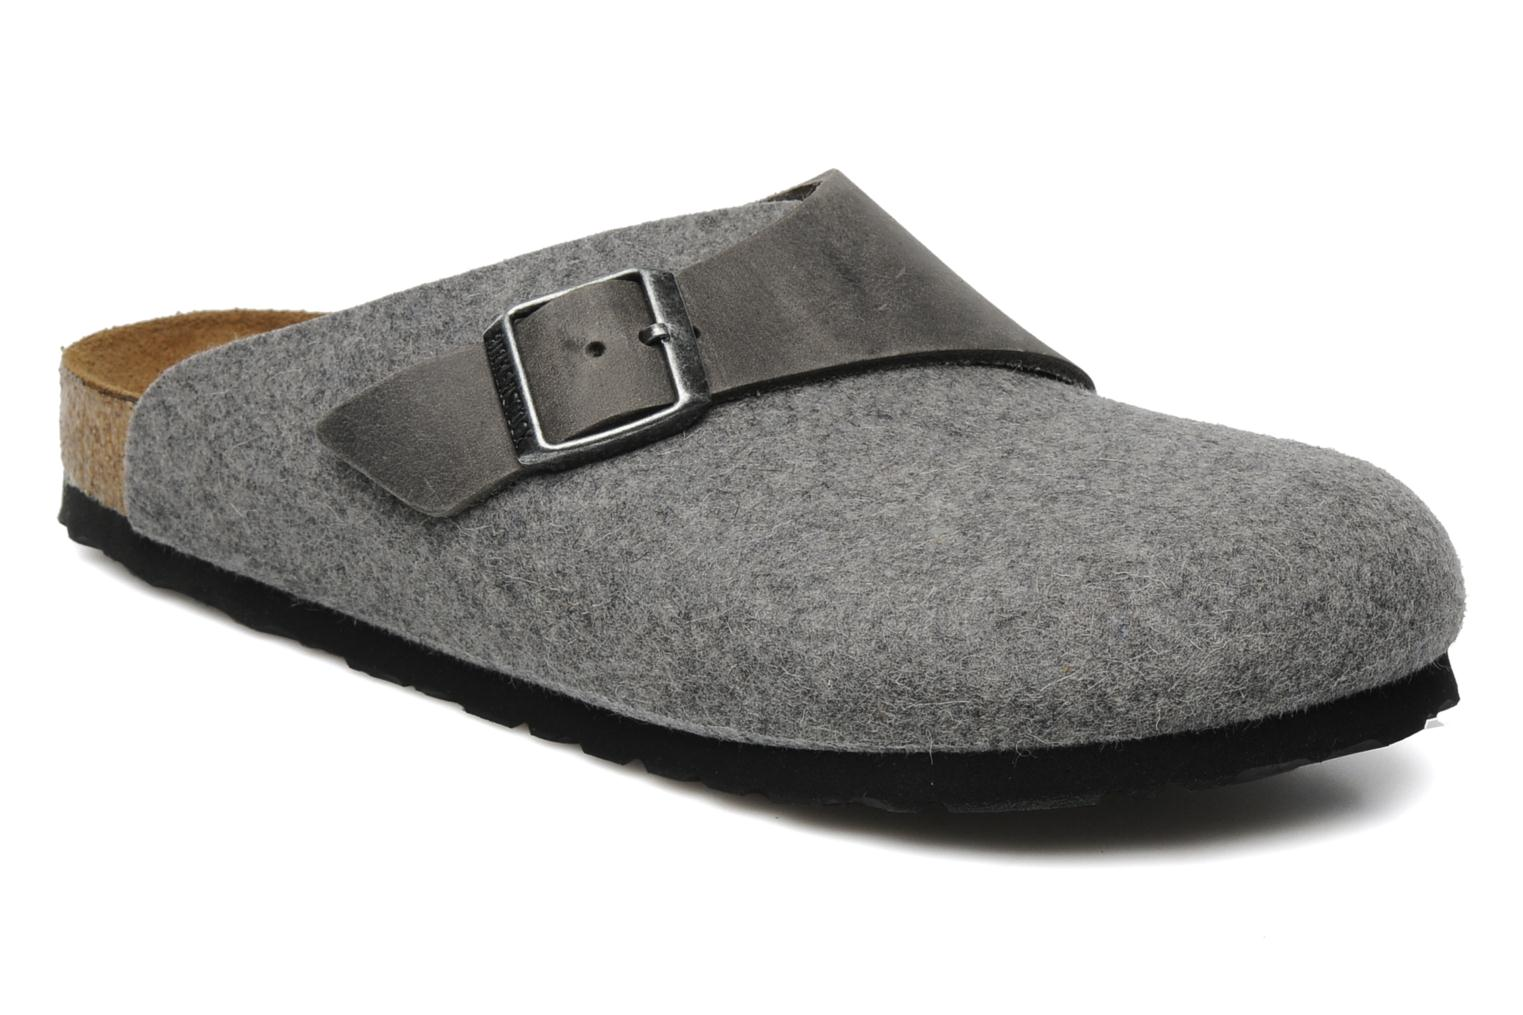 birkenstock basel w gris mules et sabots chez sarenza 118502. Black Bedroom Furniture Sets. Home Design Ideas